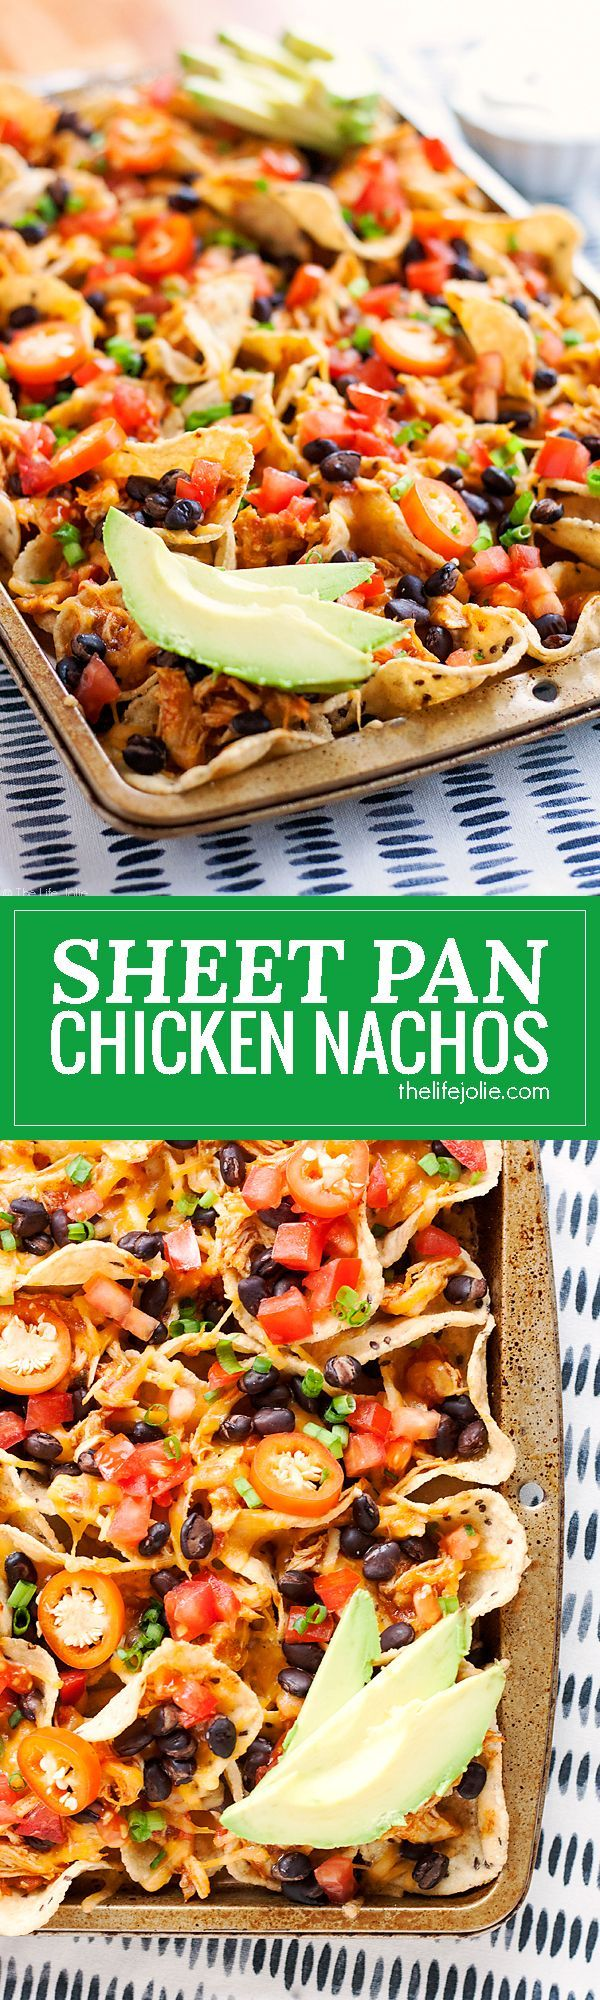 These Sheet Pan Chicken Nachos are an easy and delicious game day snack recipe! They are so simple to put together and bake up in the oven with tortilla chips, leftover taco meat, plenty of cheese and all sorts of other great toppings! You've got to try t